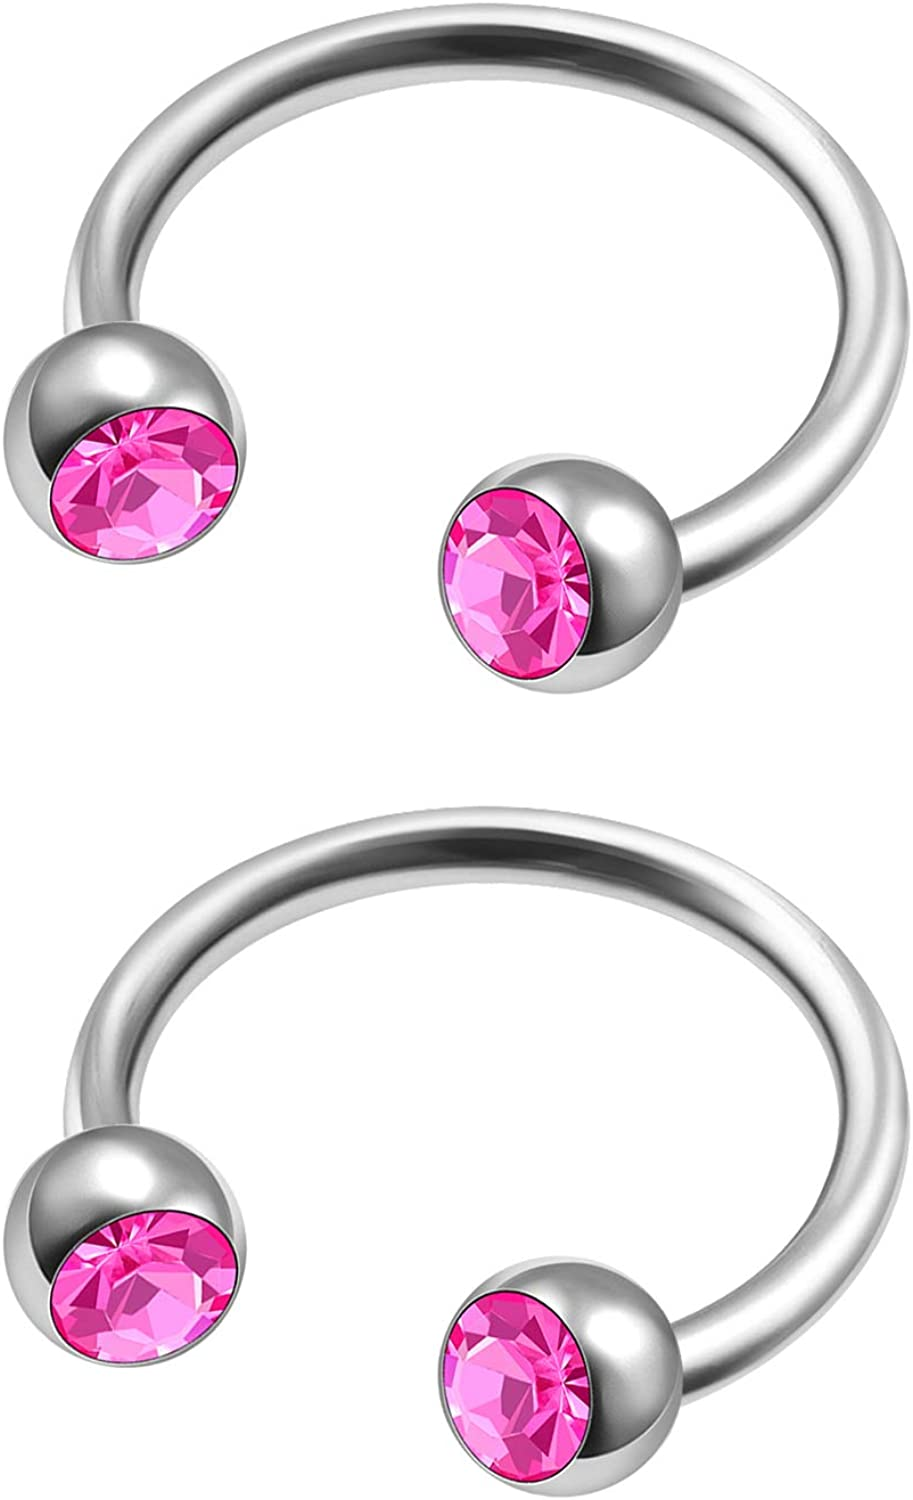 MATIGA 2Pcs Steel 5/16 8mm 20g Horseshoe Barbell Piercing Jewelry Septum Nose Eyebrow Tragus Cartilage 3mm Crystal Ball More Choices